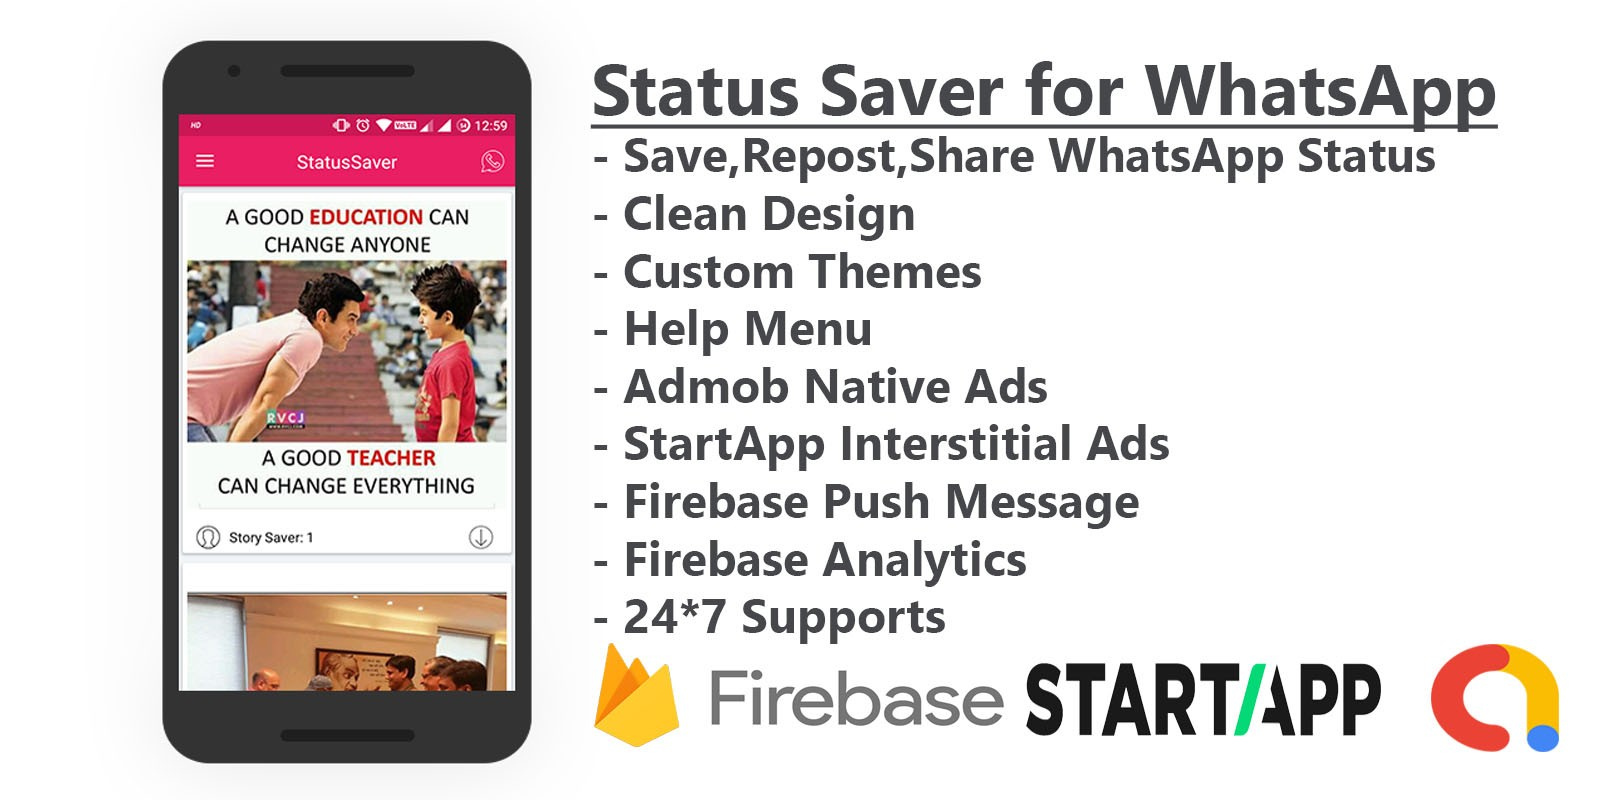 Status Saver For Whatsapp - Android Source Code